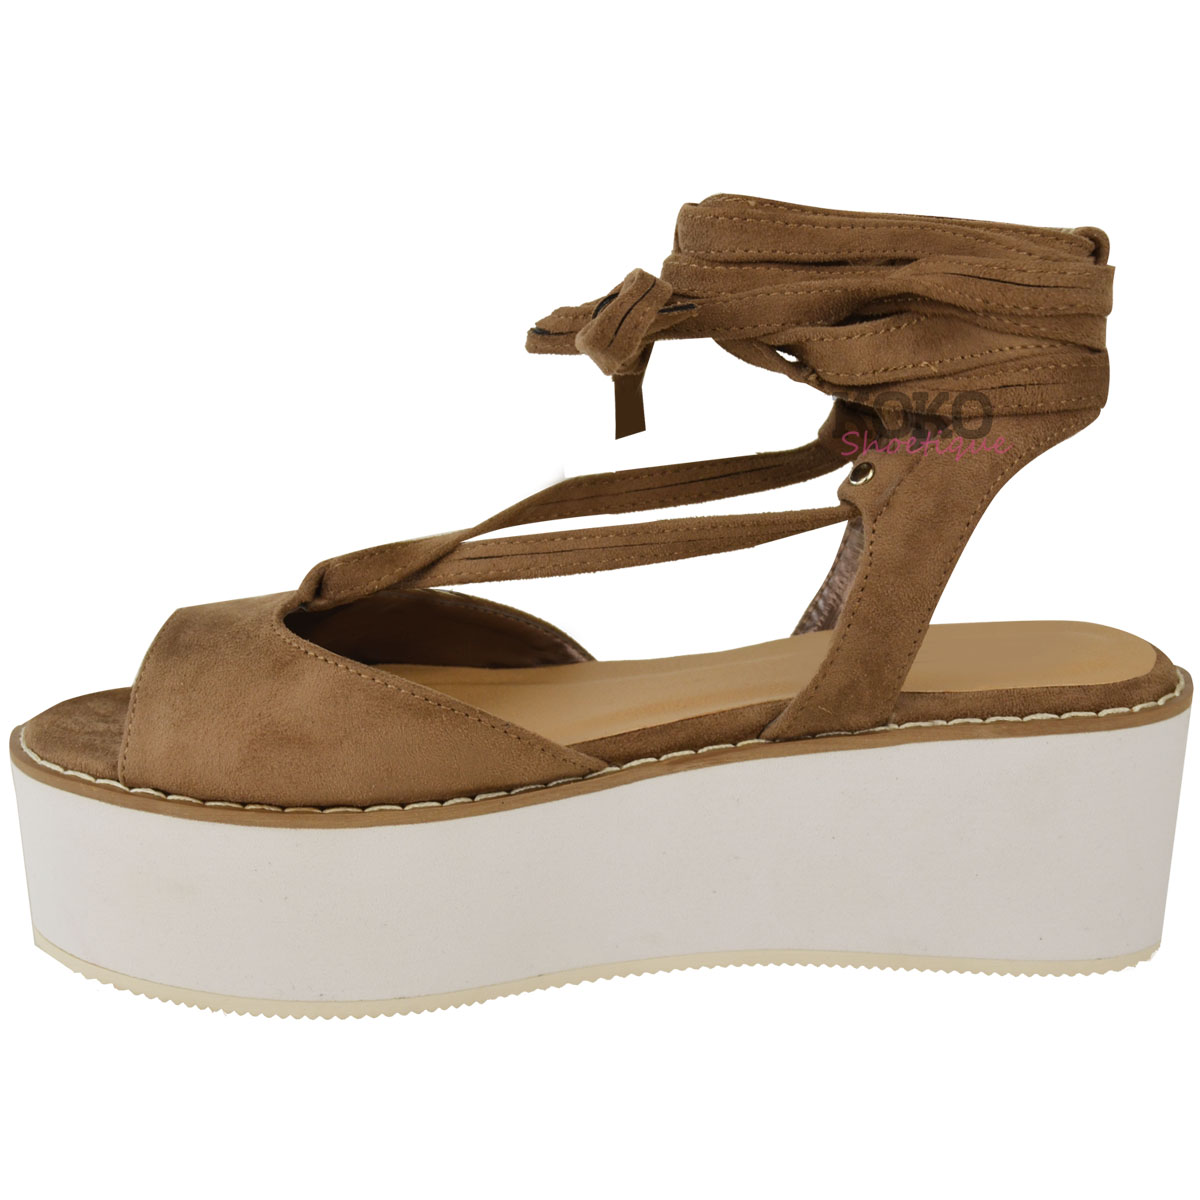 8332aff73a48 Luxury Womens Strappy Platform Wedge Sandals Summer Wedges Shoes Ladies  Girls Size 3-8